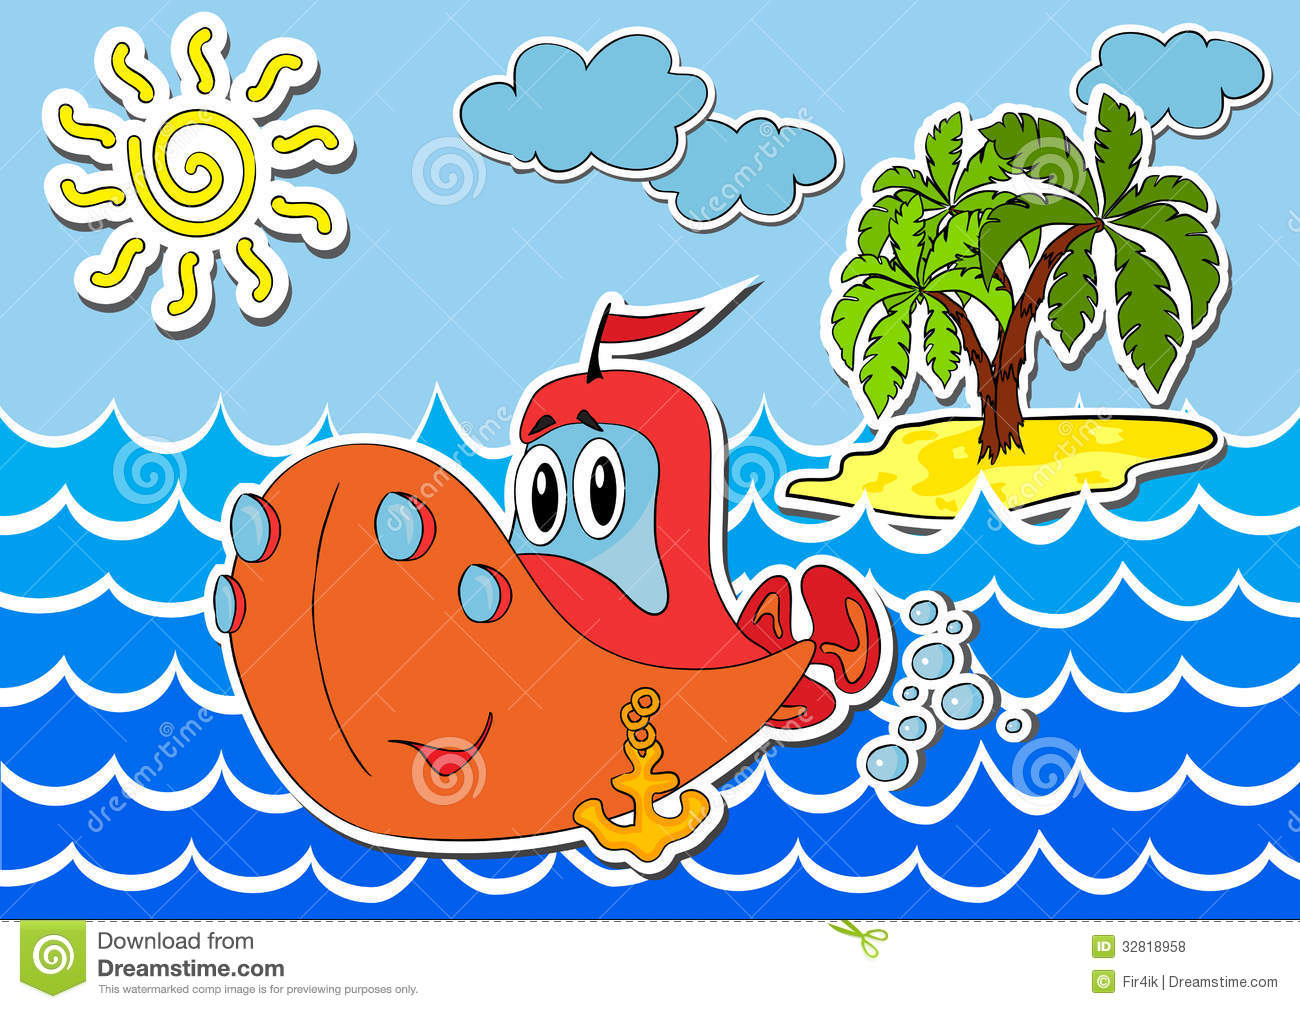 Cartoon ship in waves at sea against the island. Vector illustration.